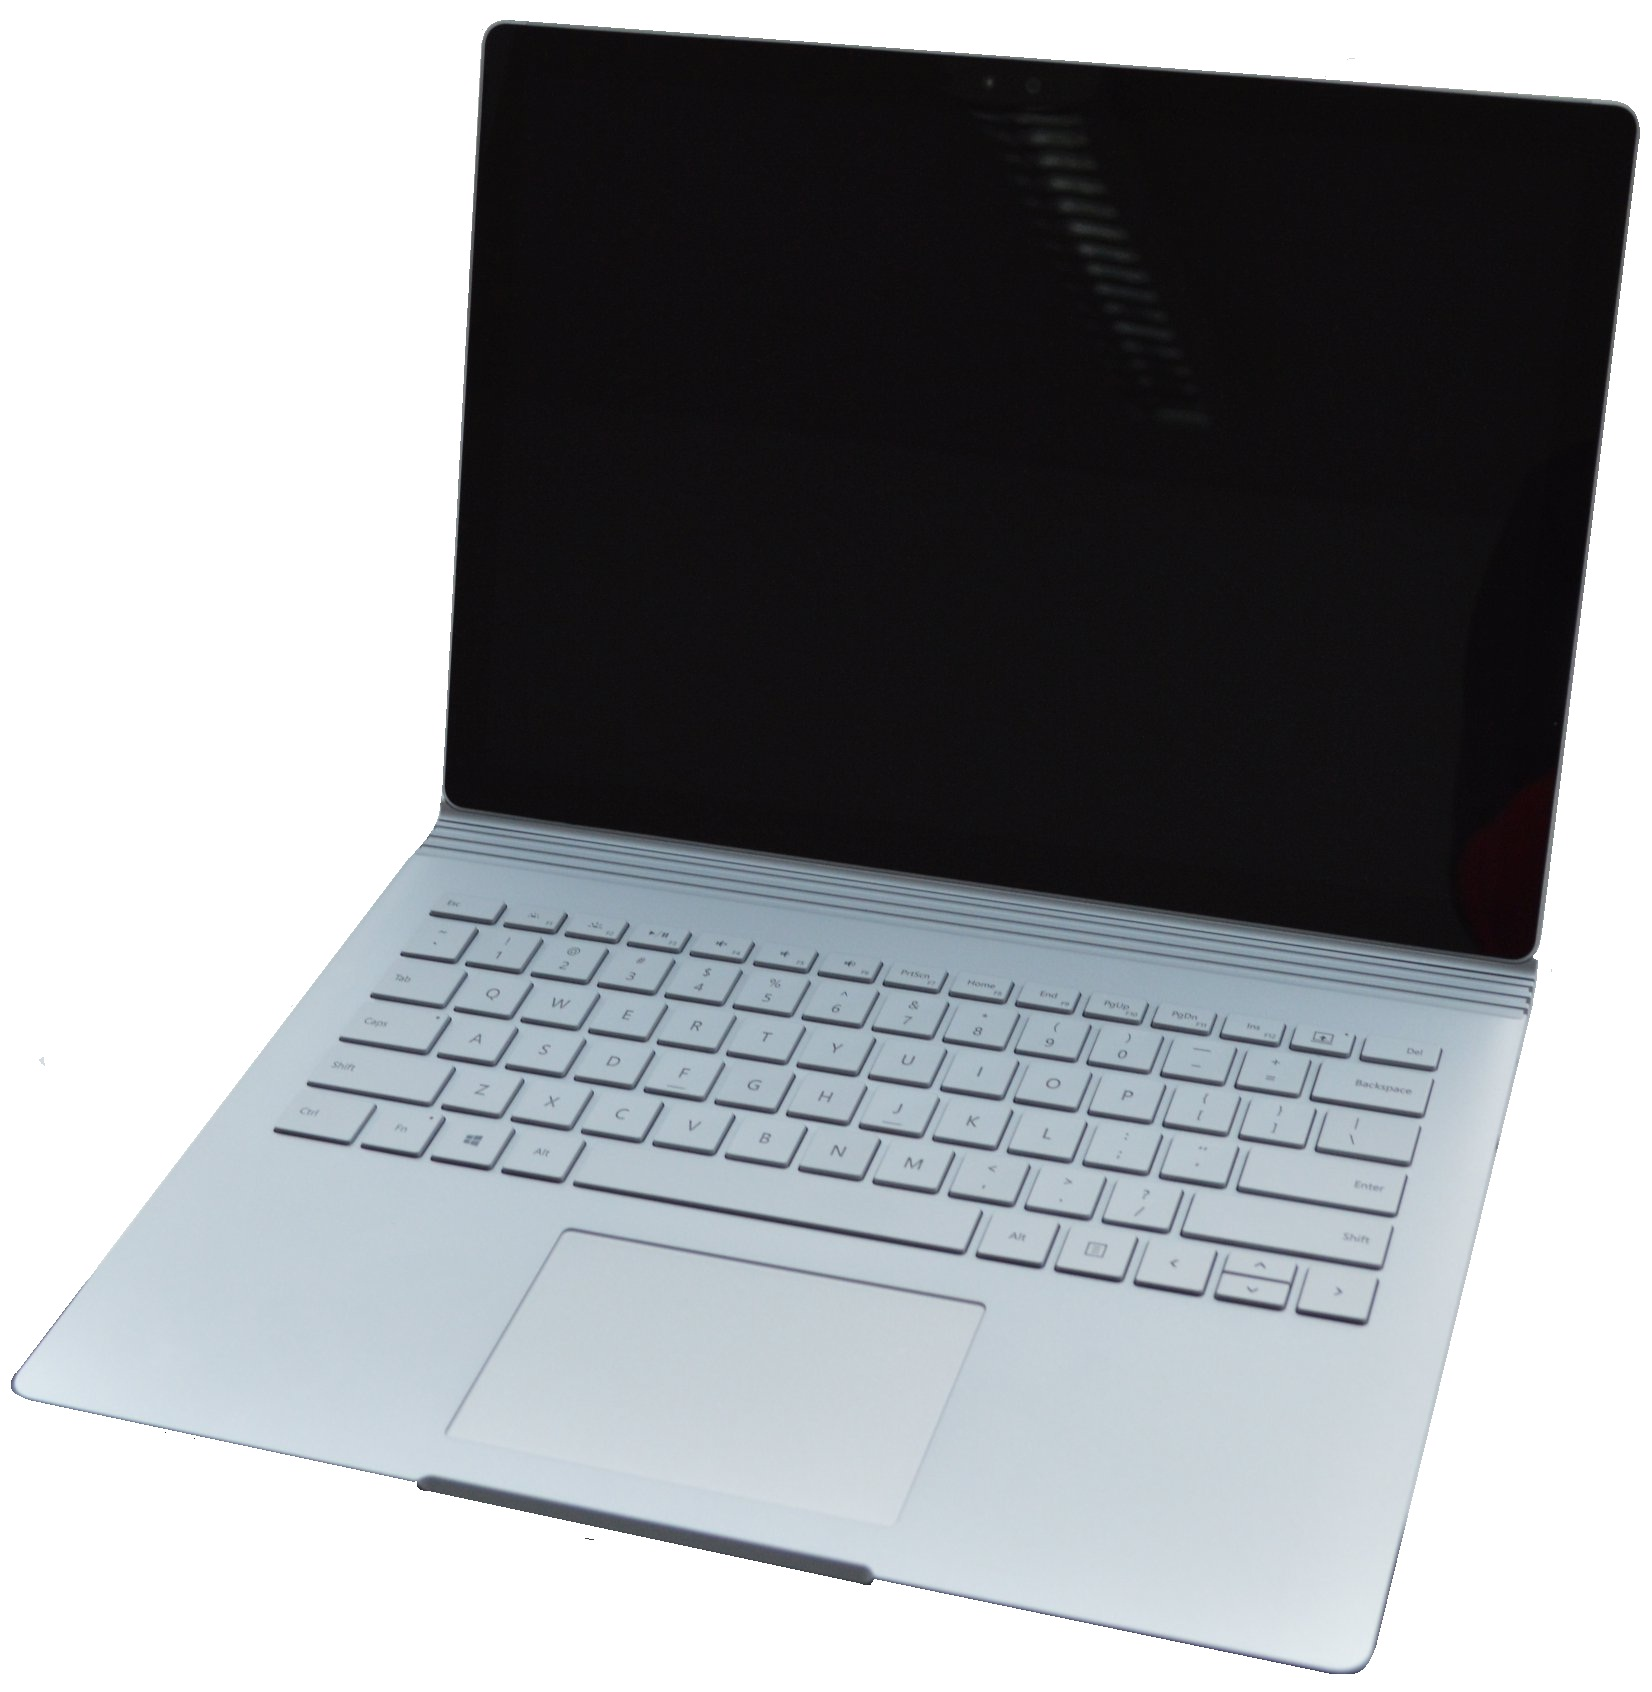 Surface Book - Wikipedia